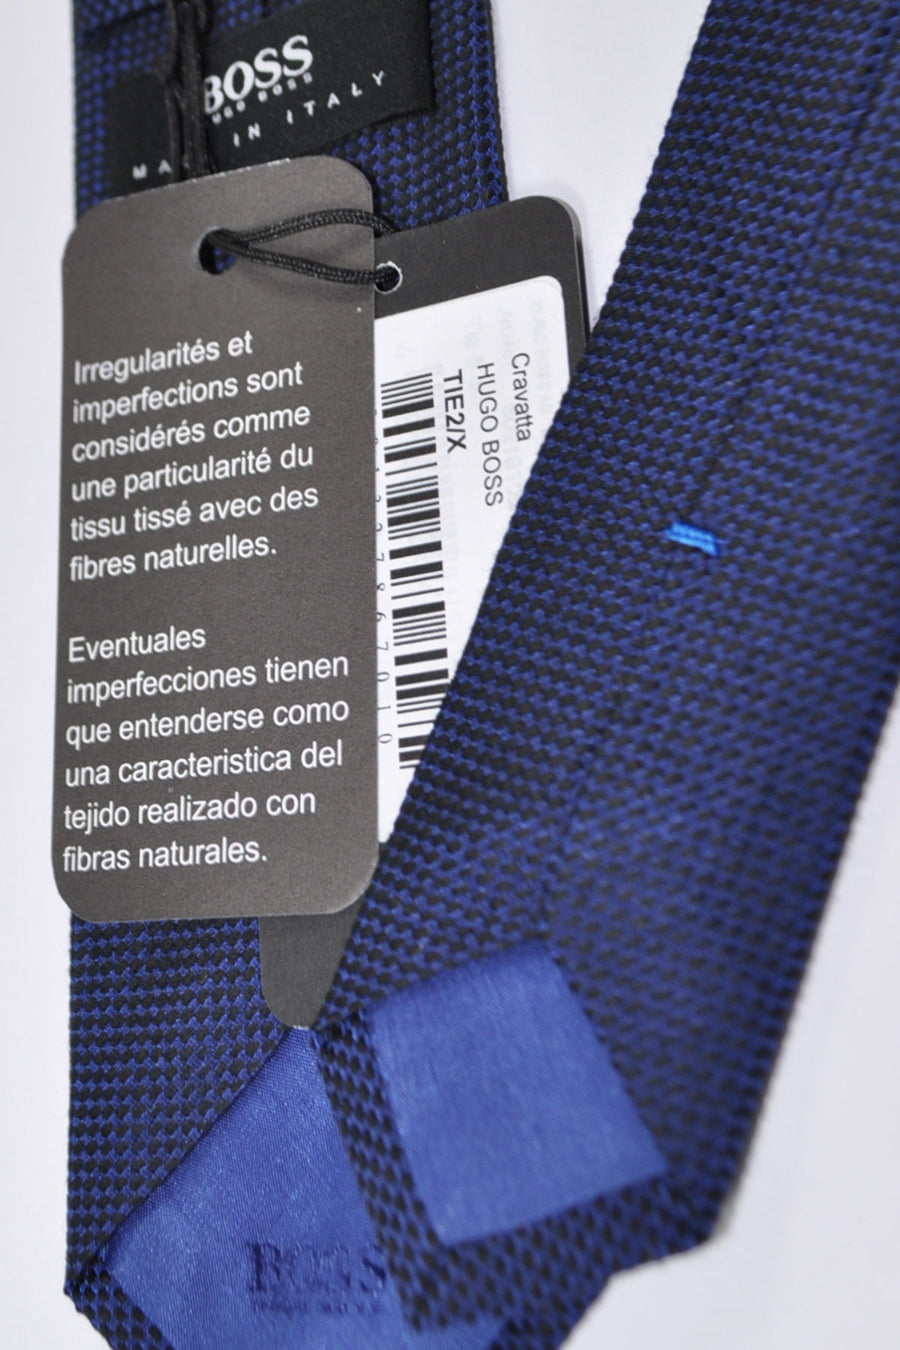 Hugo Boss Skinny Tie Navy Royal Blue